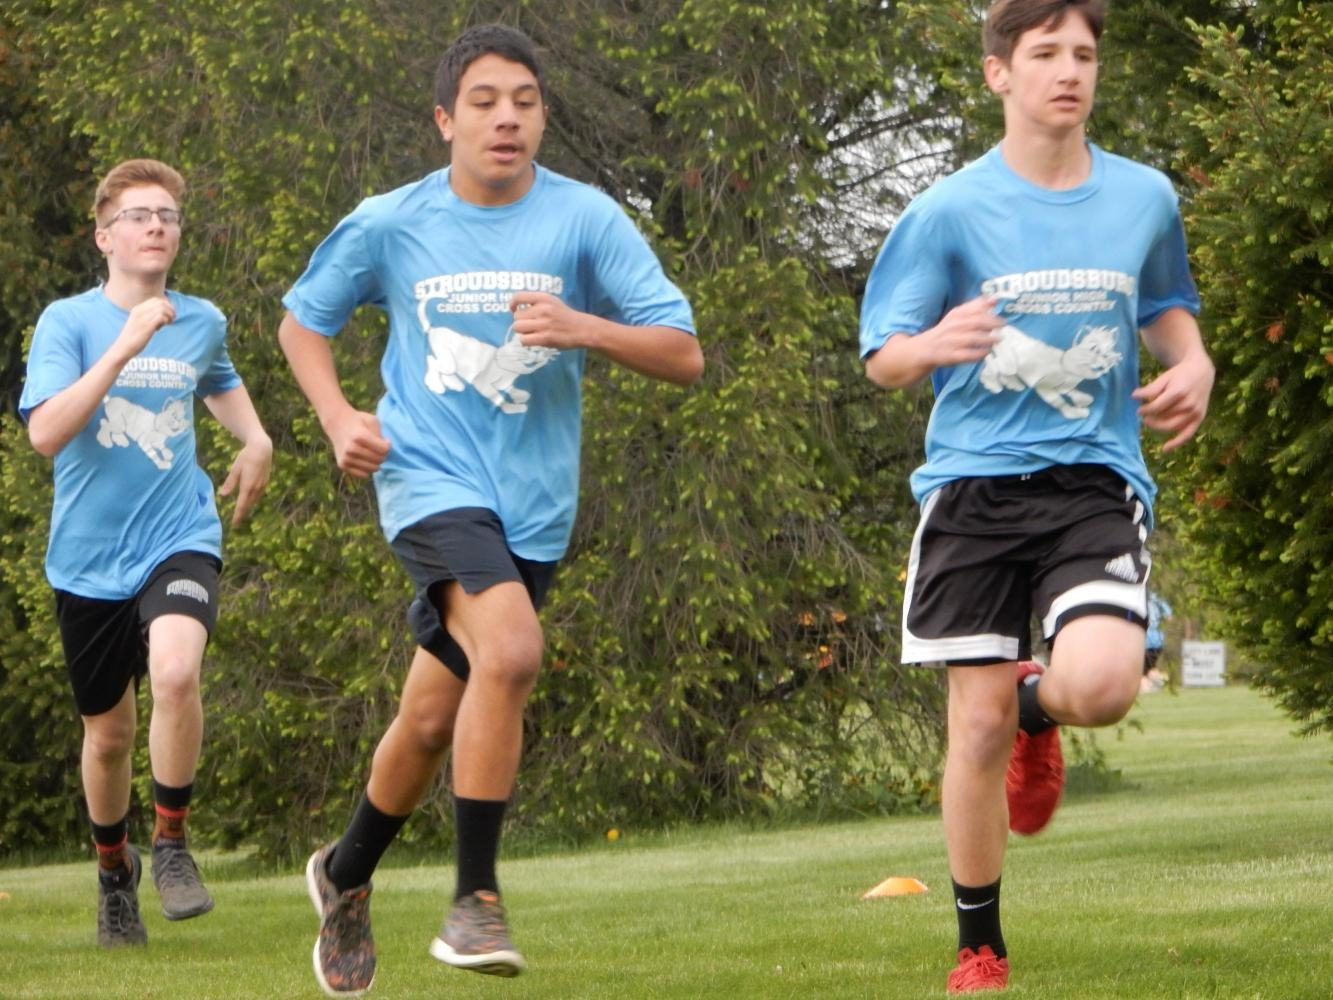 SJHS+cross+country+runs+into+second+half%3A++See+photo+gallery+below%21